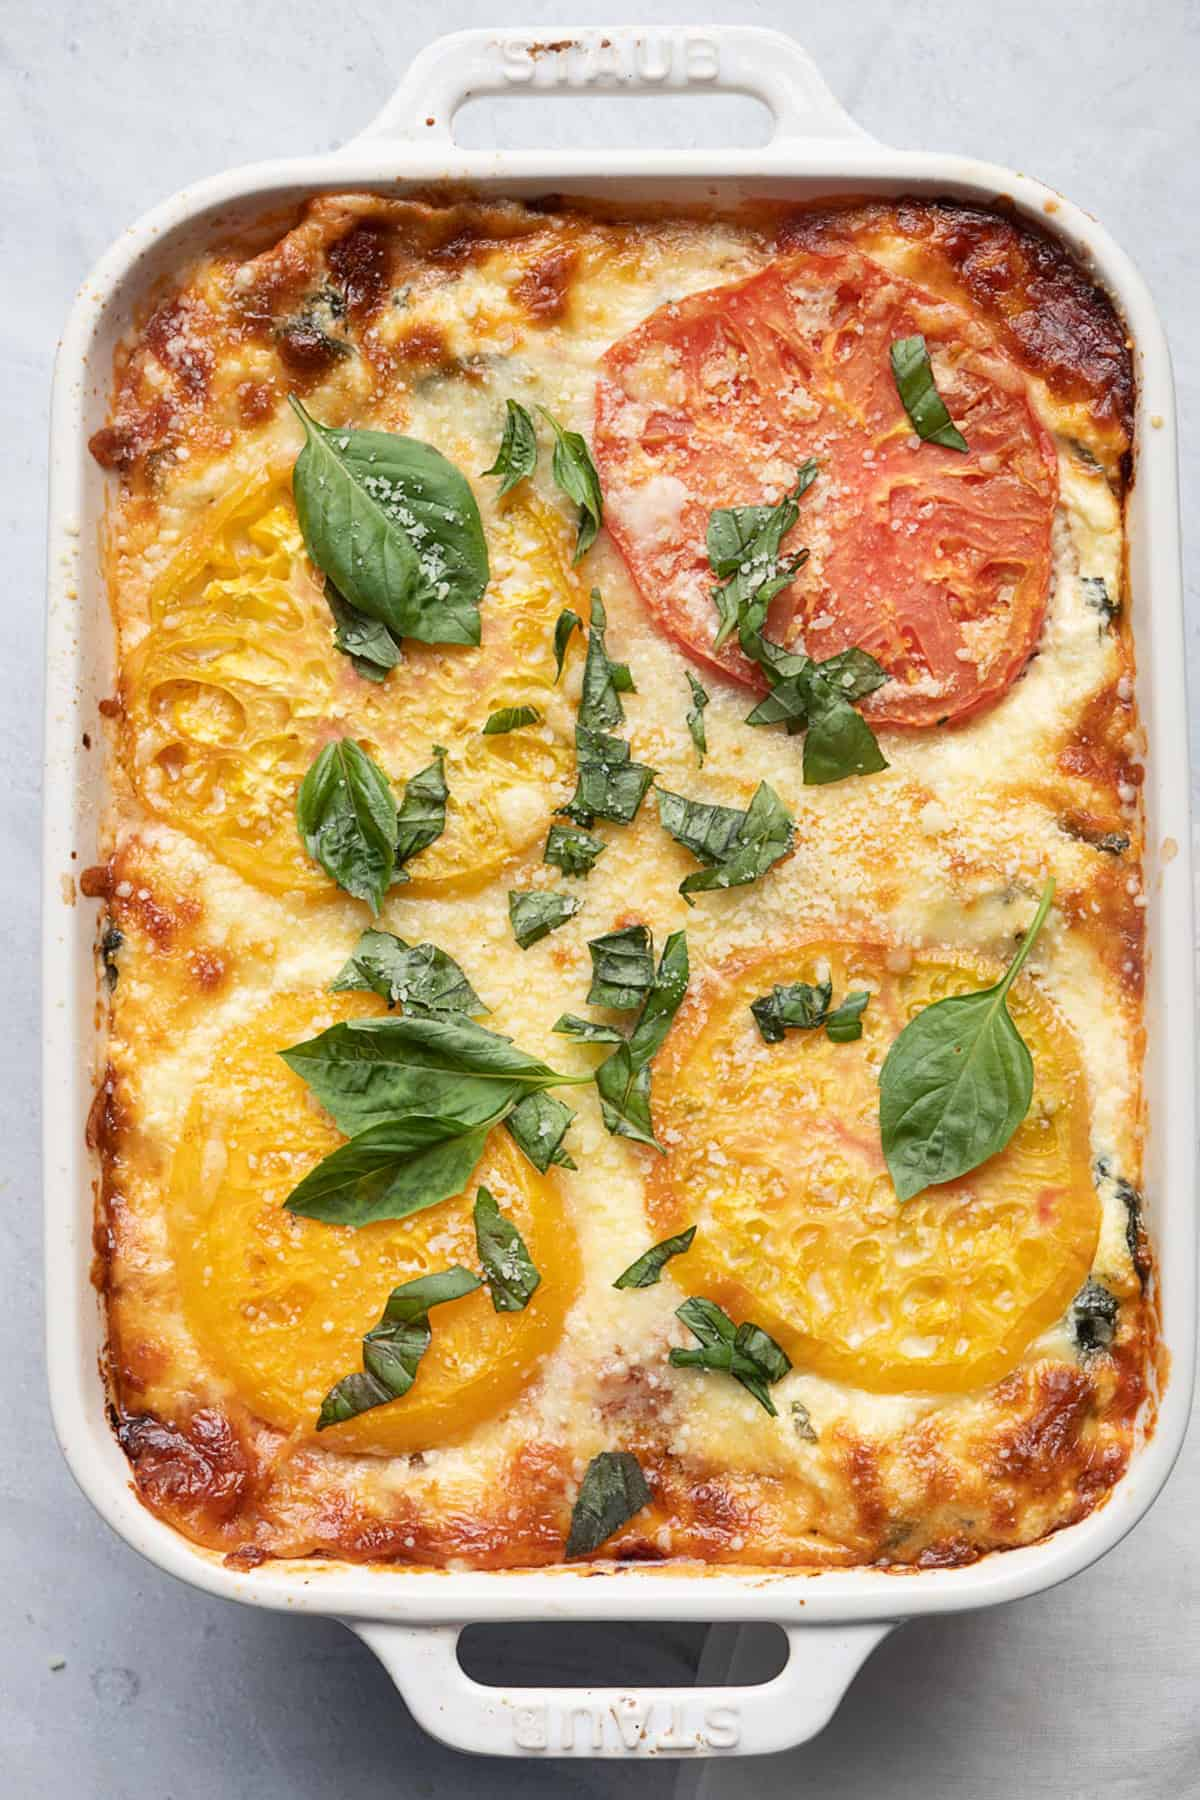 Heirloom Tomato Lasagna in a baking dish after cooked